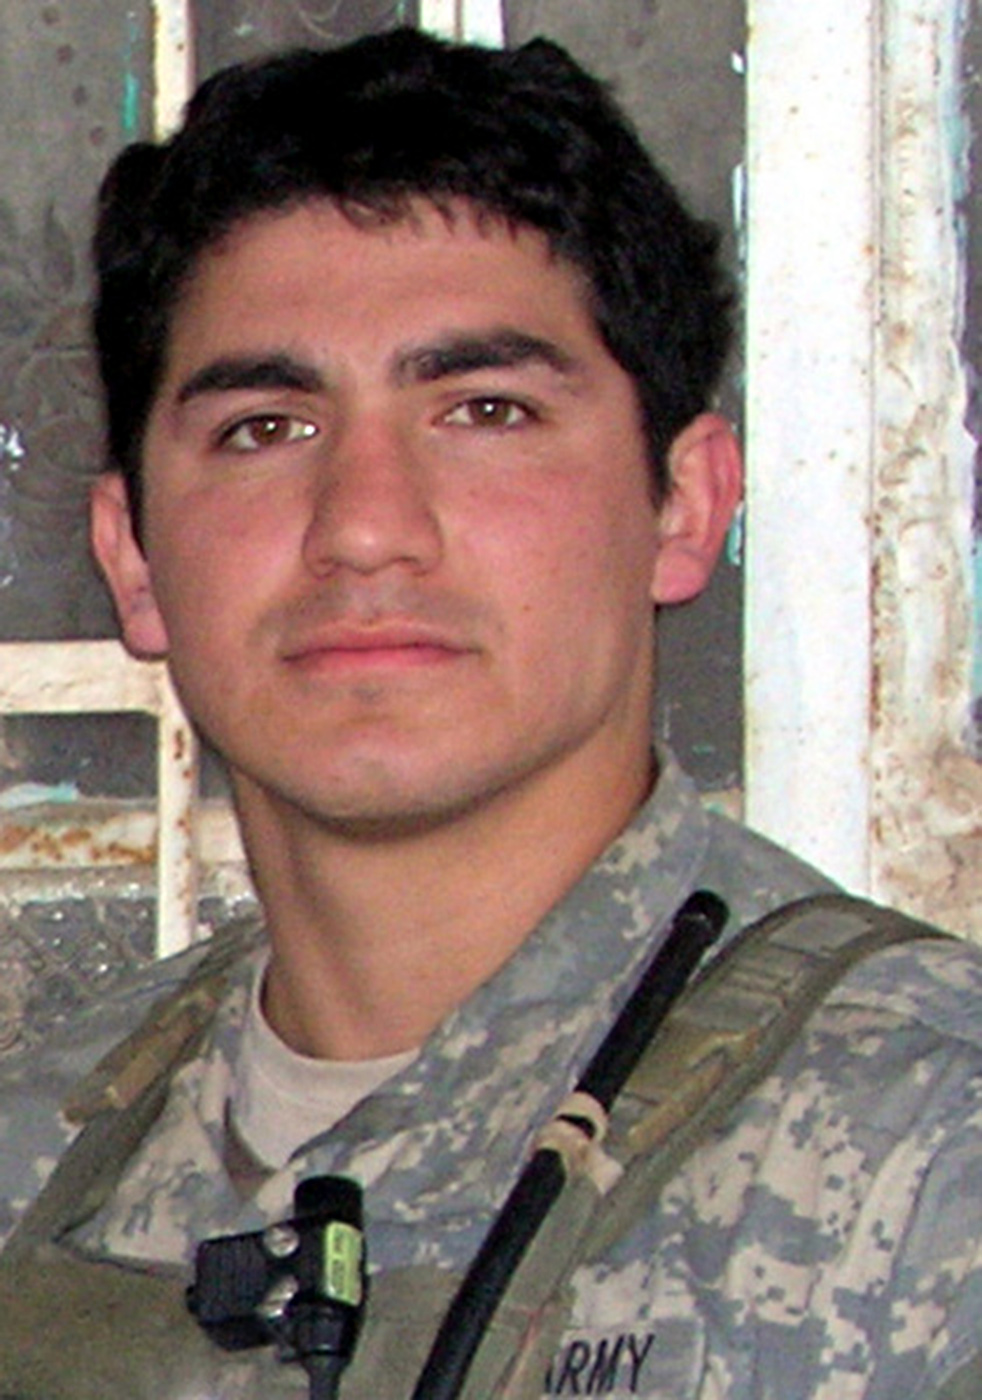 U.S. Army Staff Sergeant Ricardo Barraza, 24, of Shafter, California, assigned to the 2nd Battalion, 75th Ranger Regiment, based in Fort Lewis, Washington, died on March 18, 2006, in Ar Ramadi Iraq, when he came under small arms fire by enemy forces during combat operations. He is survived by his parents Francisco and Nina, his siblings Amanda, Rachel, Jamie, and Frankie, and his fiancee Maghan K. Harrington and her daughter Kayla.